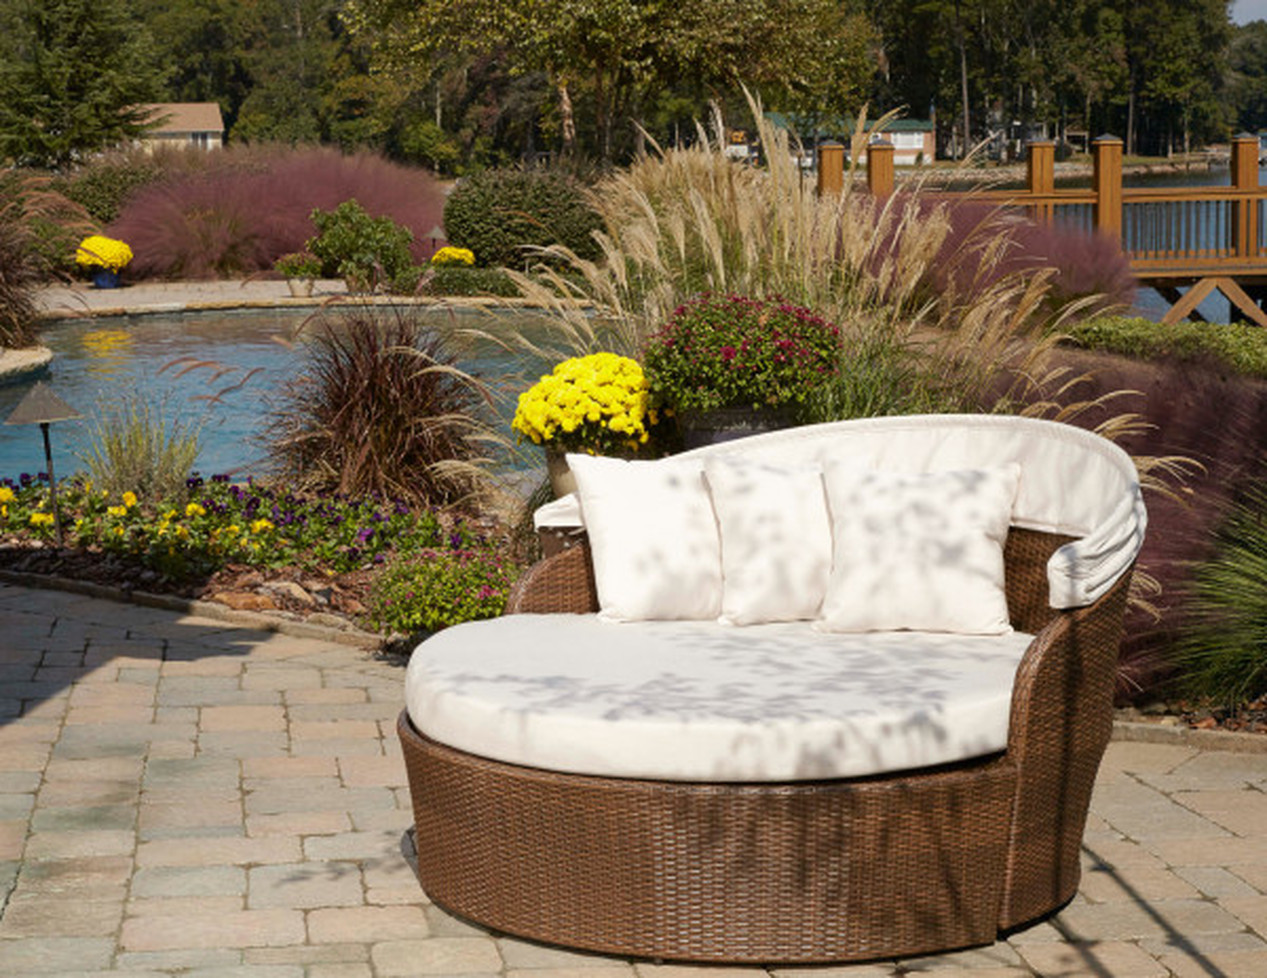 DAYBED & HANGING CHAIR PATIO SEATING